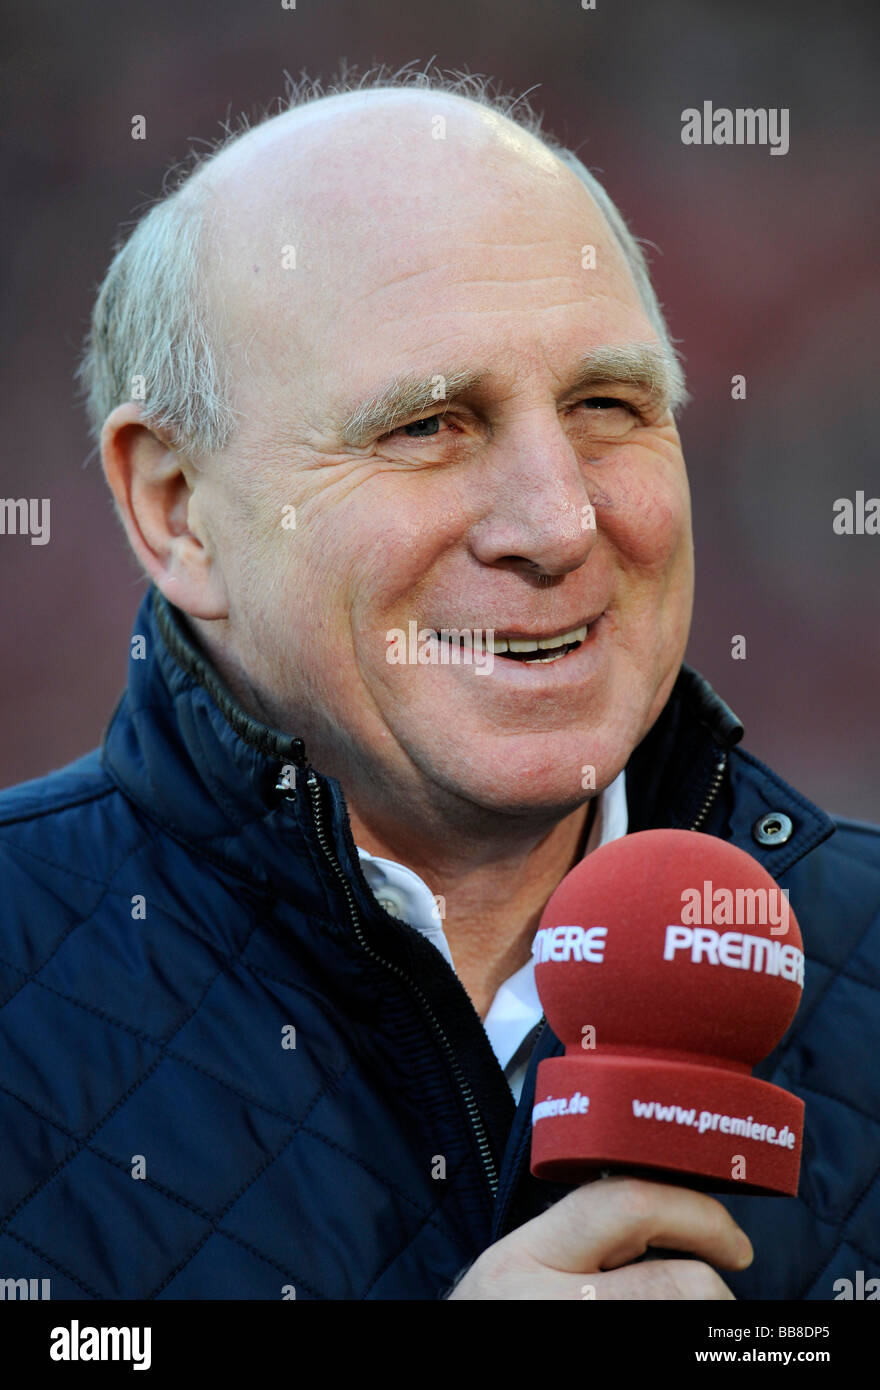 Manager Dieter HOENESS, Hertha BSC Berlin, with PREMIERE microphone - Stock Image